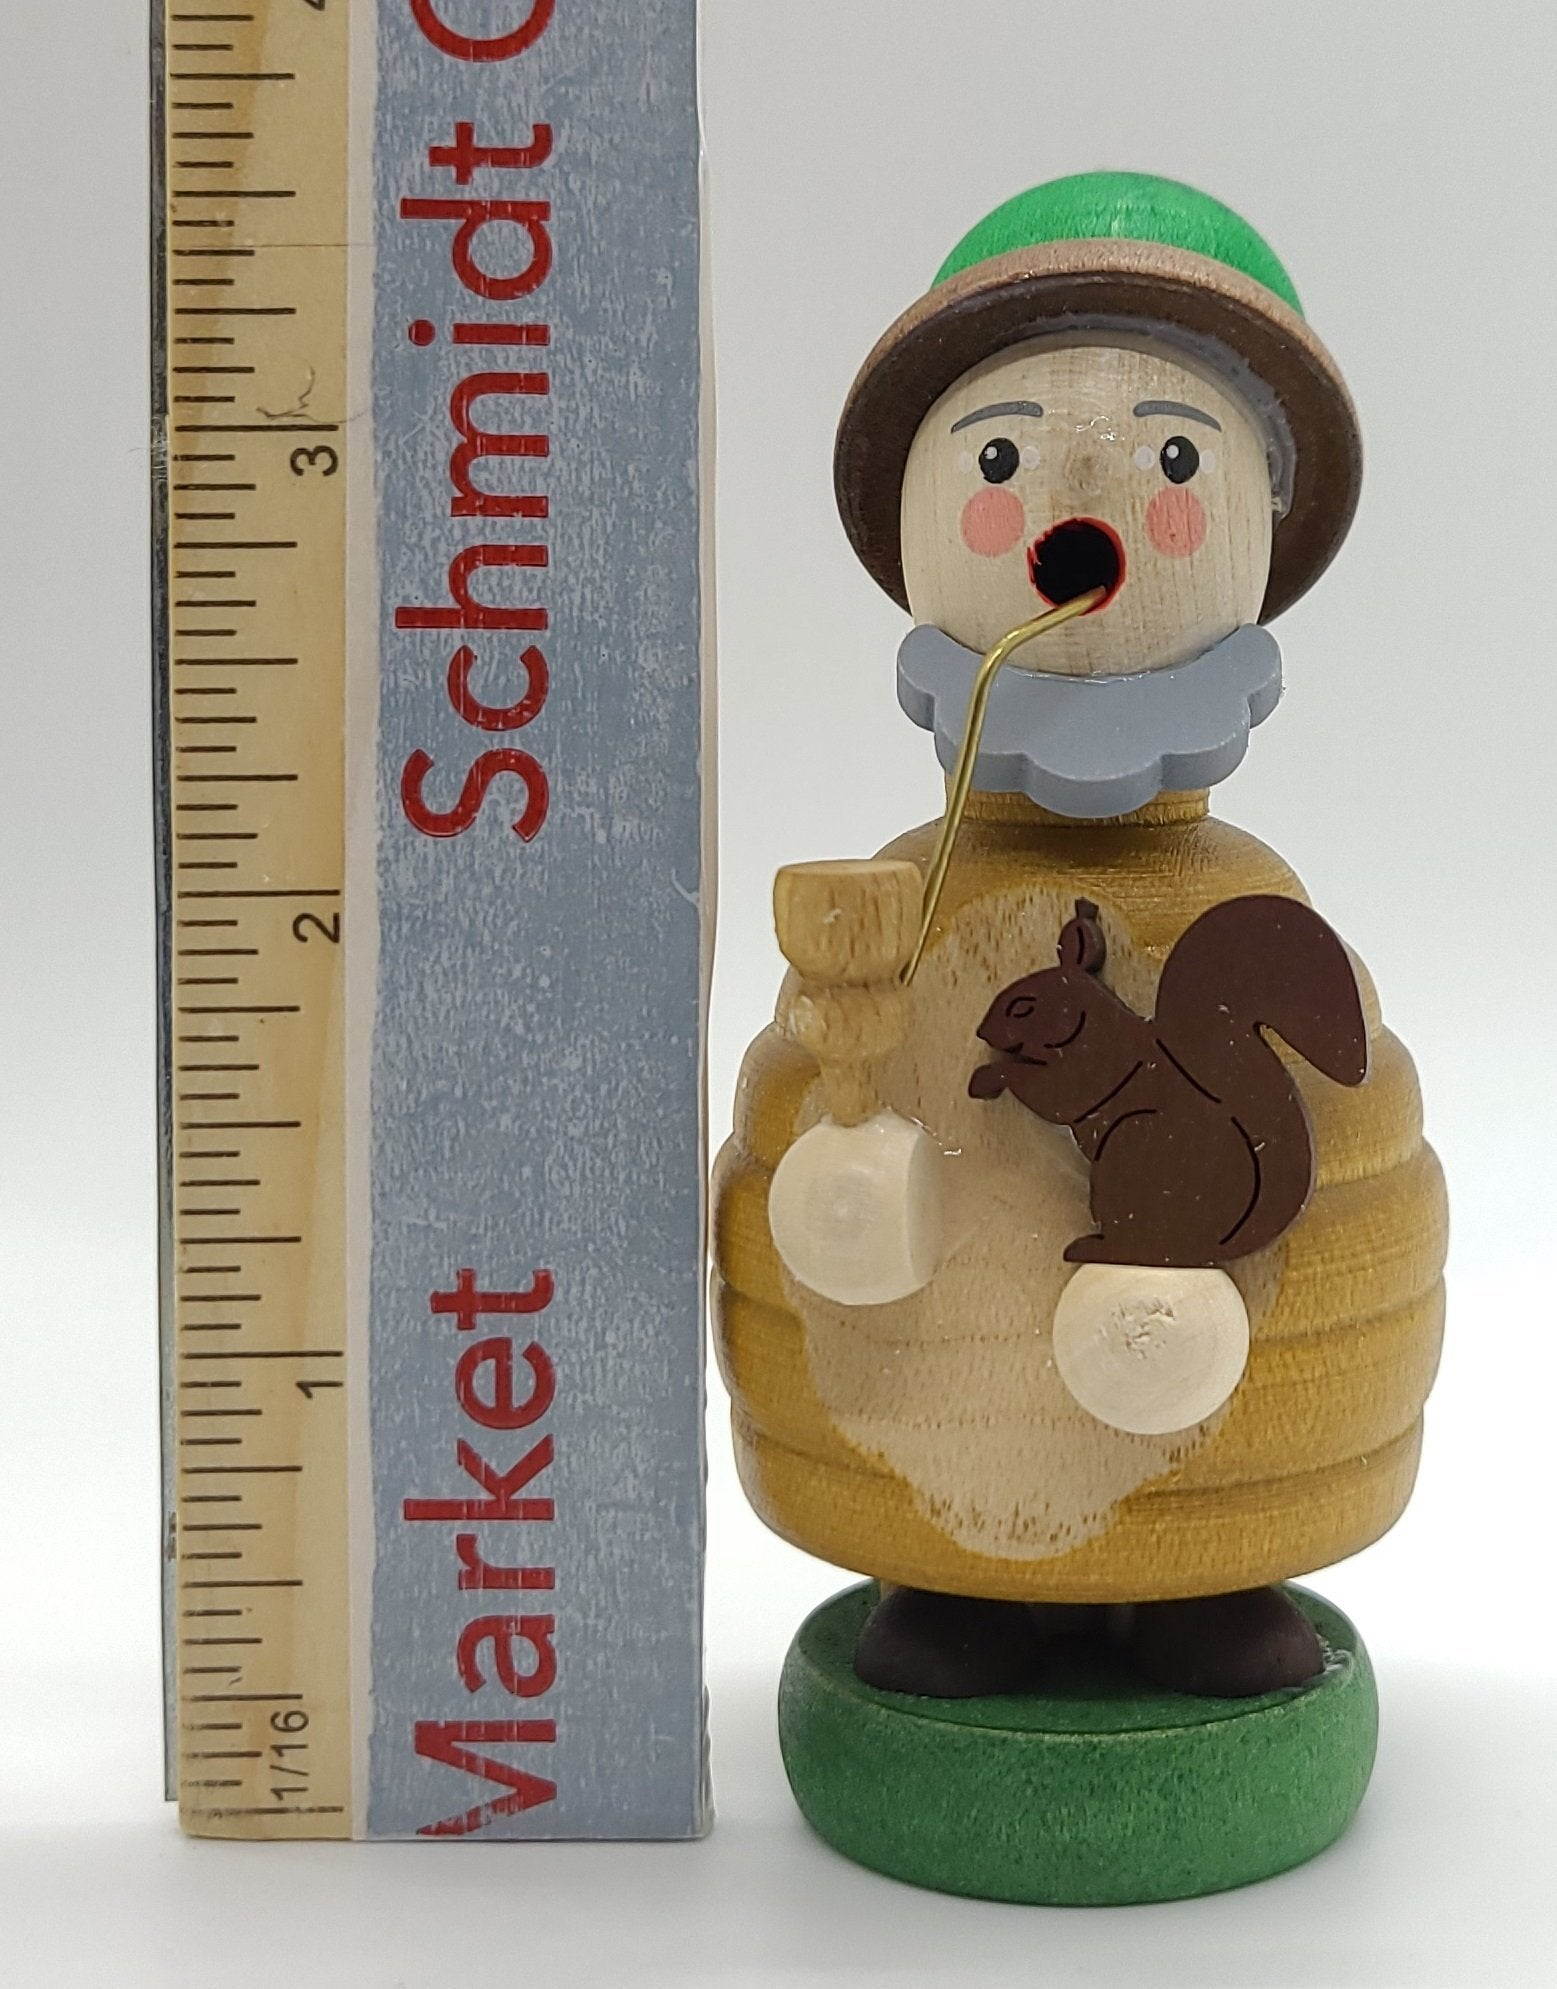 Handmade Mini-Smoker Dwarf with squirrel - Schmidt Christmas Market Christmas Decoration